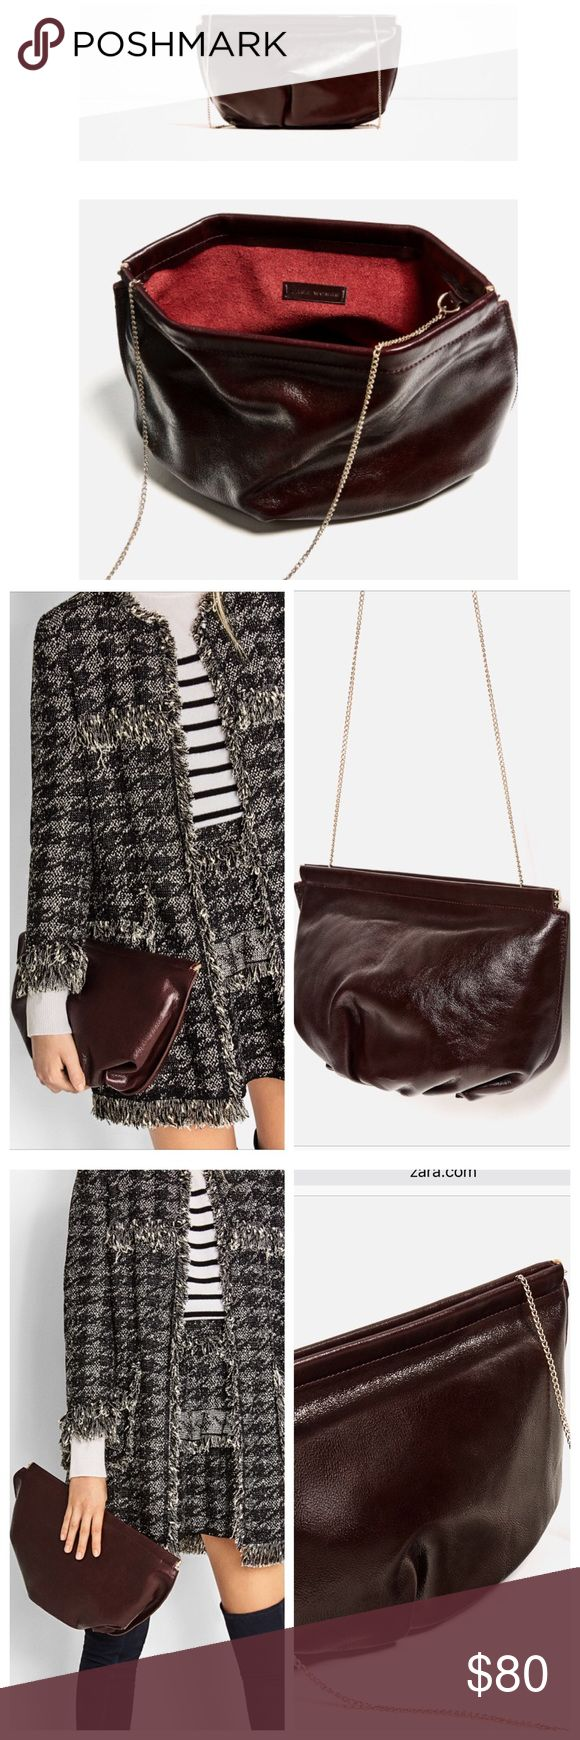 Zara Crackled  💯 Leather Crossbody Bag NWT Zara Crackled 100% Real Leather Crossbody Bag // Chain Strap // Gathered effect on the bottom // Color: burgundy // Dimensions: Height:23cm Width:38cm Depth: 13cm // New with tags // SOLD OUT ONLINE & IN STORES // 15% off on bundles. I ship same-day from pet/smoke-free home. Buy with confidence. I am an expert top seller with close to 400 5-star ratings and A LOT of love notes. Check them out. 😊😎 Zara Bags Crossbody Bags